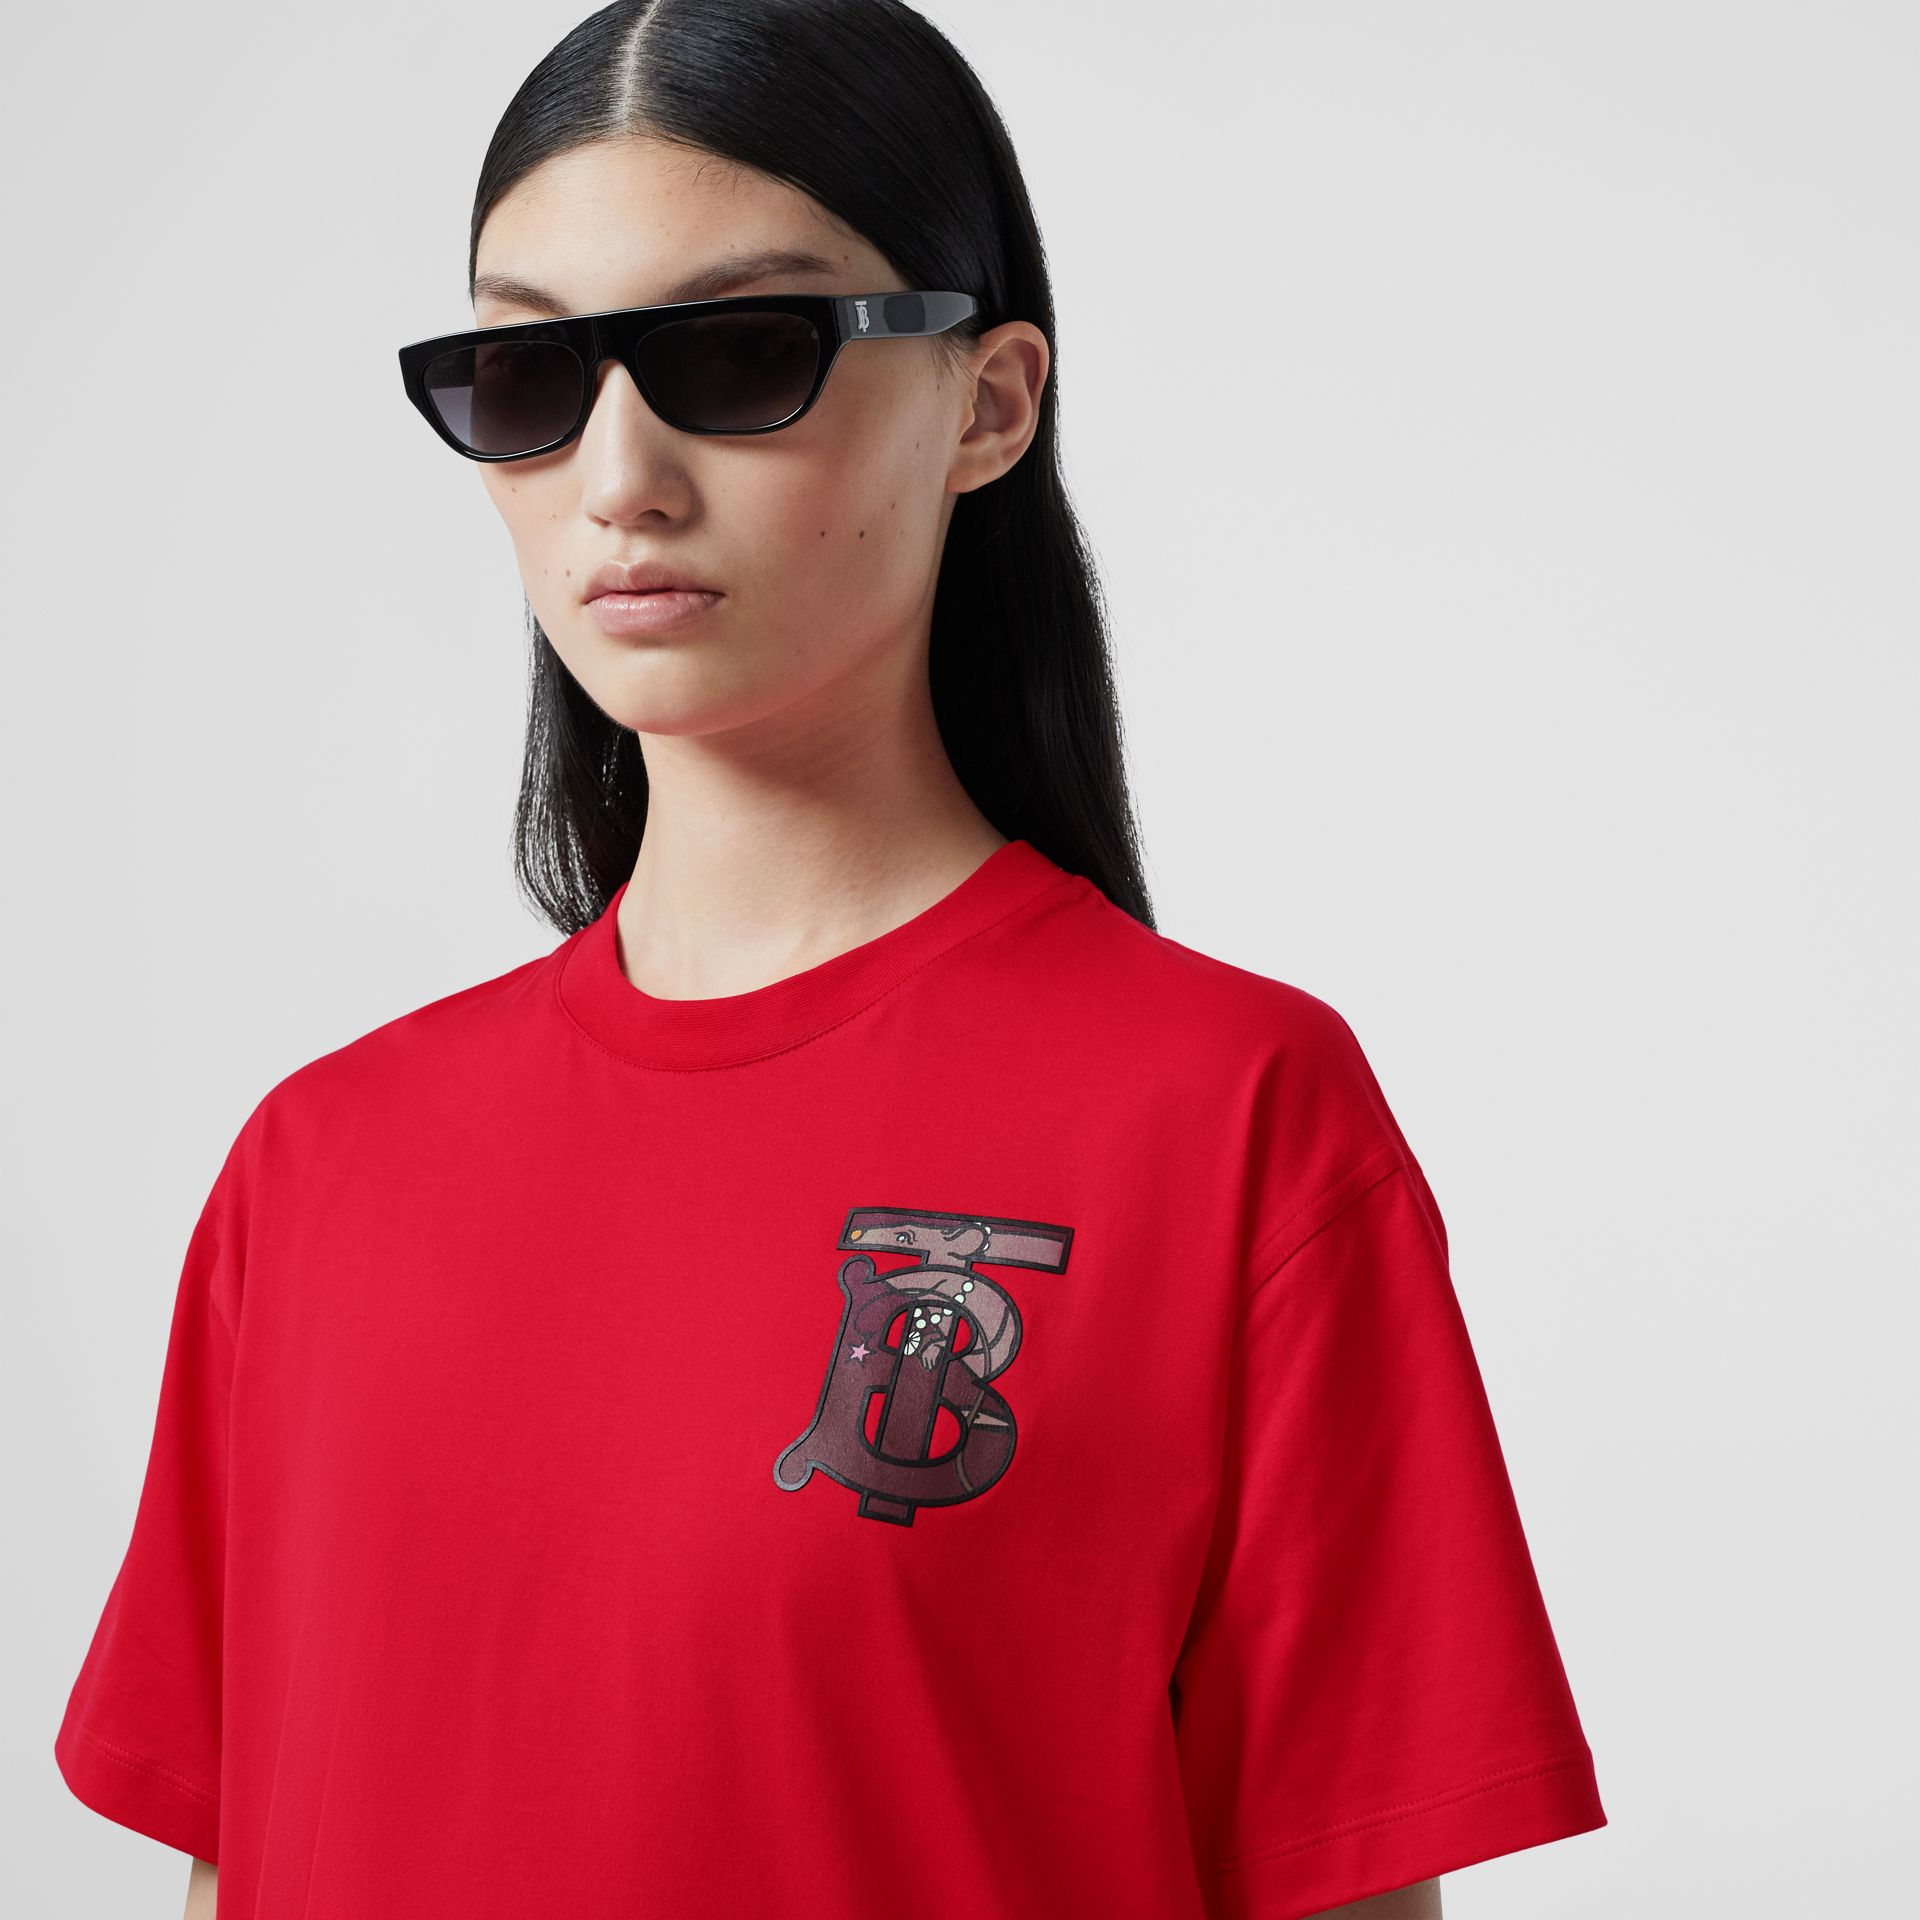 Monogram Motif Cotton Oversized T-shirt in Bright Red - Women | Burberry United Kingdom - gallery image 1